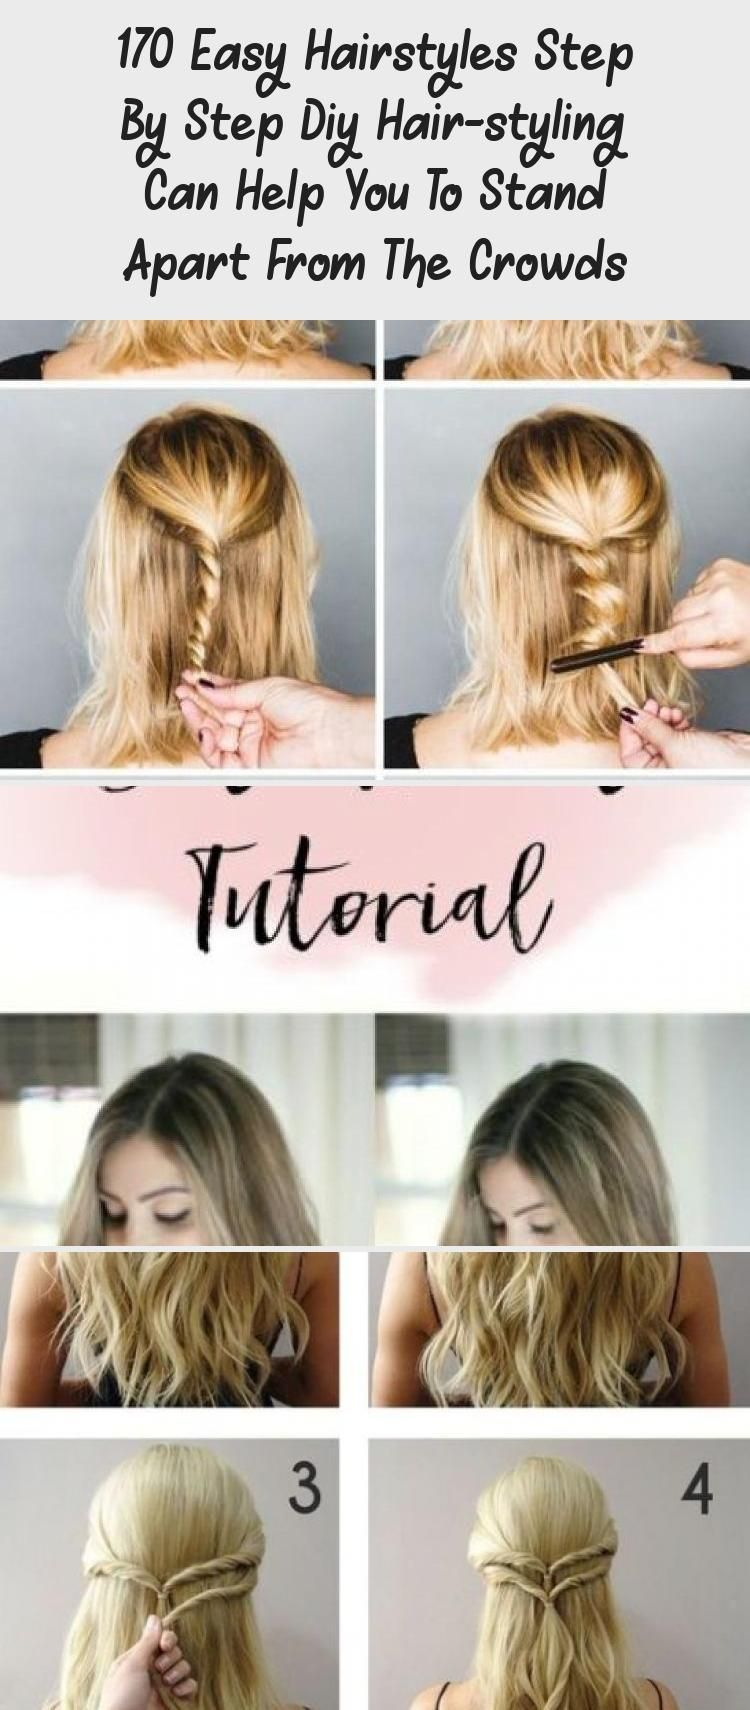 170 Easy Hairstyles Step By Step Diy Hair Styling Can Help You To Stand Apart From The Crowds Page 83 My Beauty In 2020 Easy Hairstyles Diy Hairstyles Hair Styles